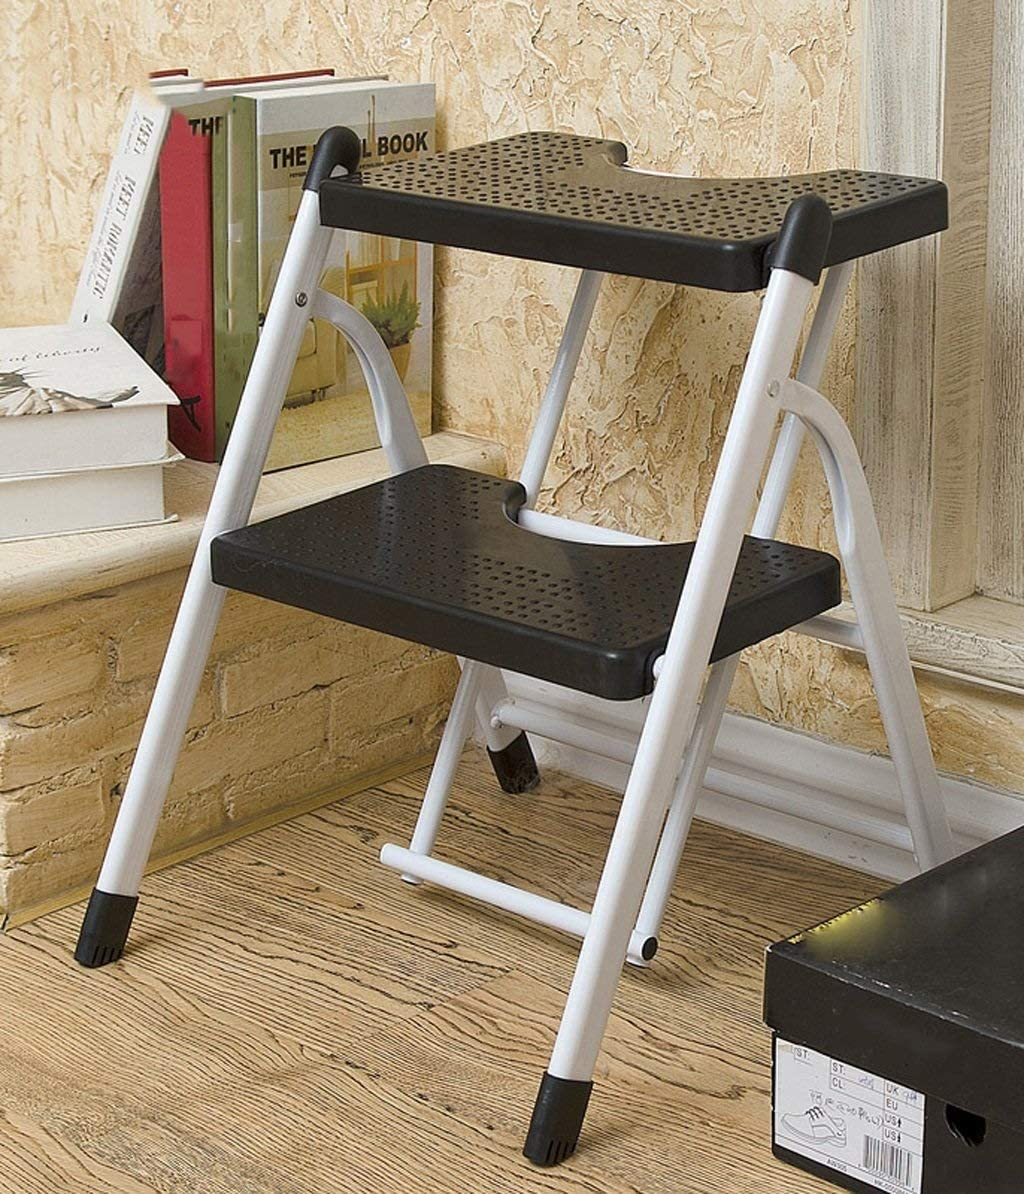 2 3 Steps Folding Ladder Stool Foot Stepladder Max 89% OFF Port NEW before selling Adult Stools